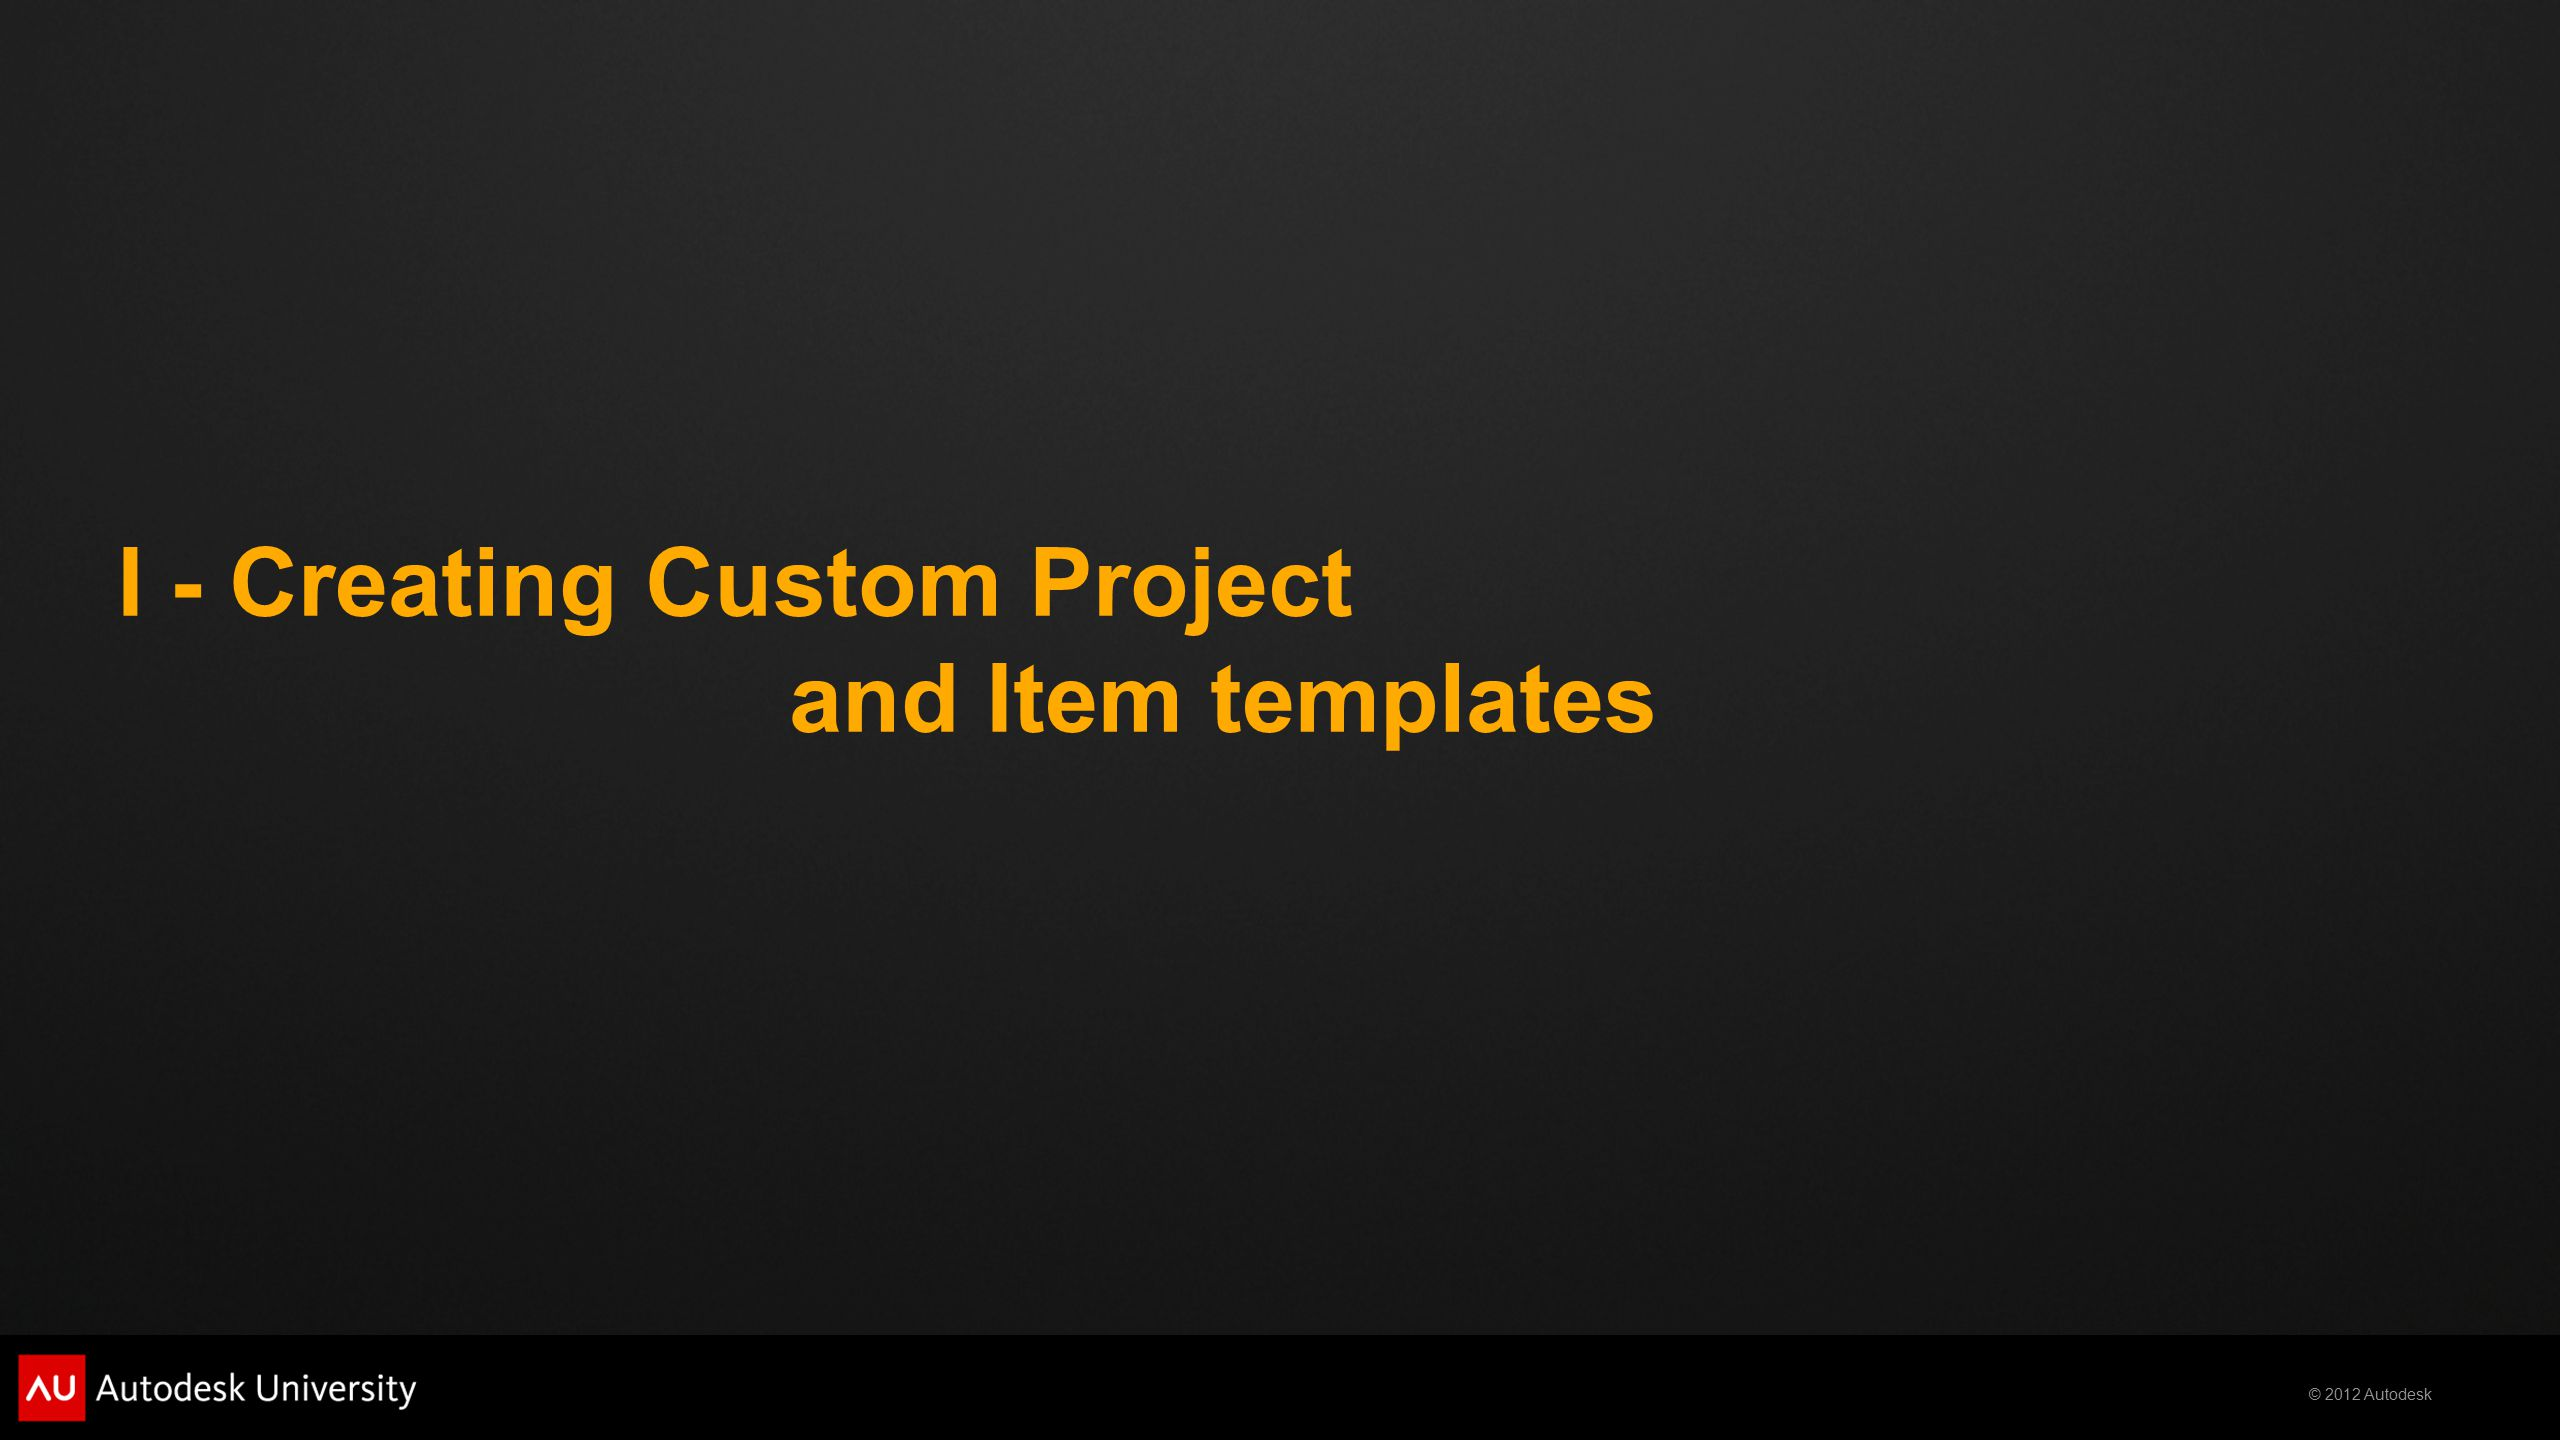 I - Creating Custom Project and Item templates